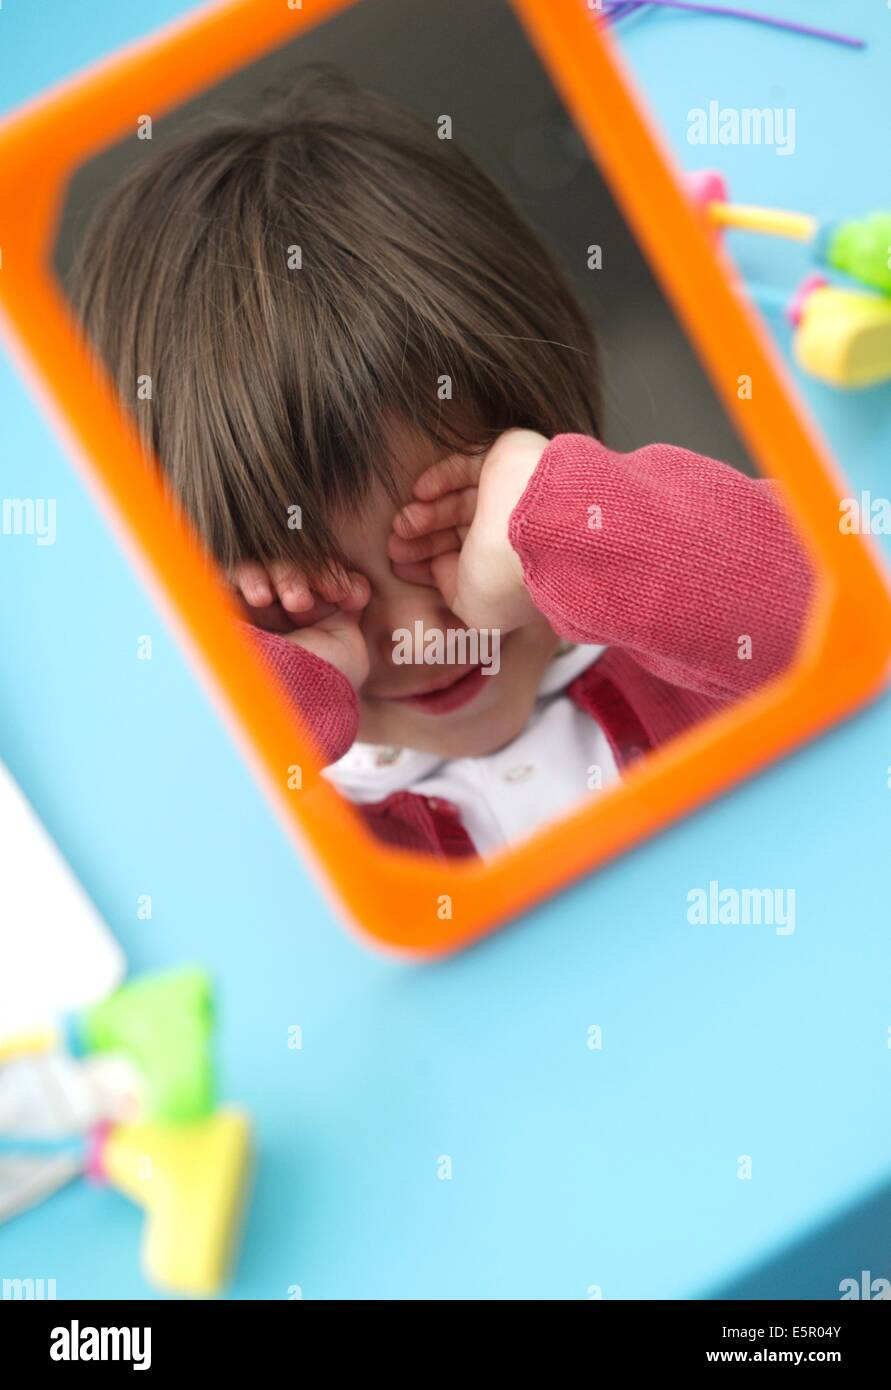 5 year old girl during speech therapy session. - Stock Image